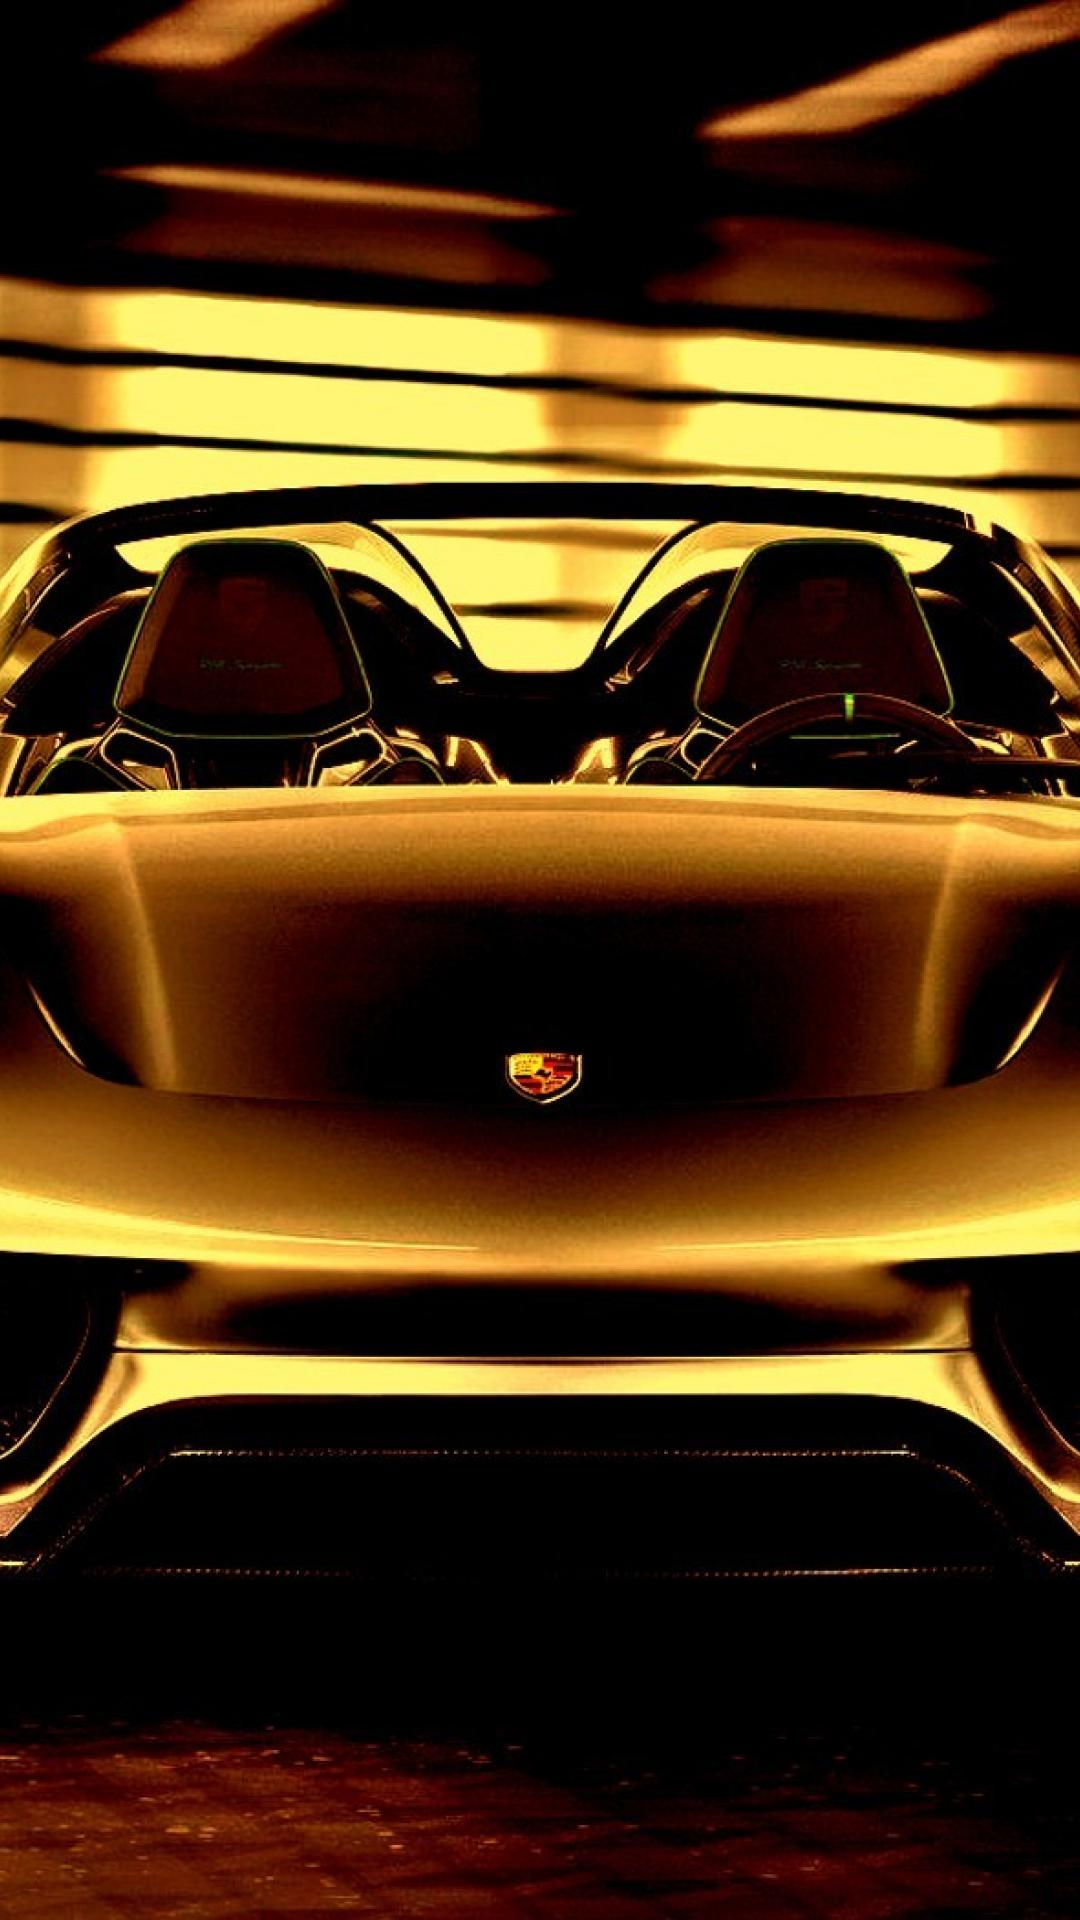 gold porsche wallpapers for galaxy s5 08 1f899d8a56e2516486079f2e4bcfd115 raw